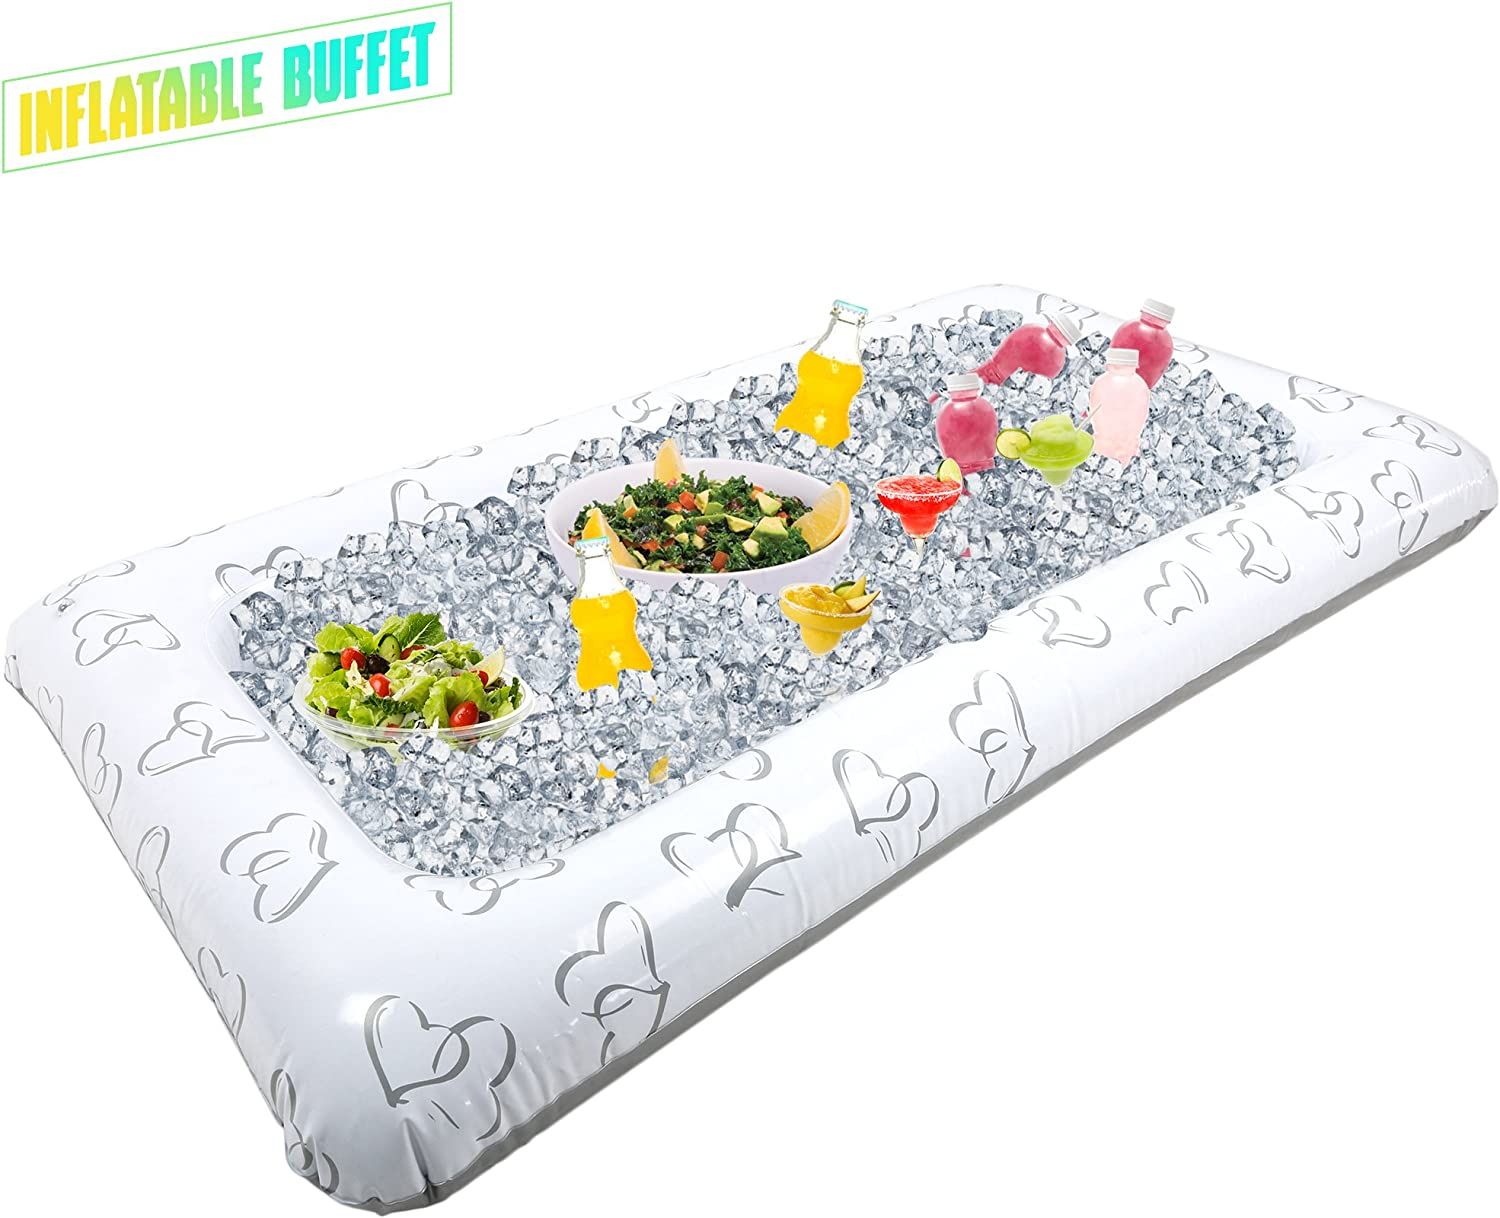 Outdoor Inflatable Buffet Cooler Server - Heart Blow Up Cooling Tub For Serving Buffet Style Picnic